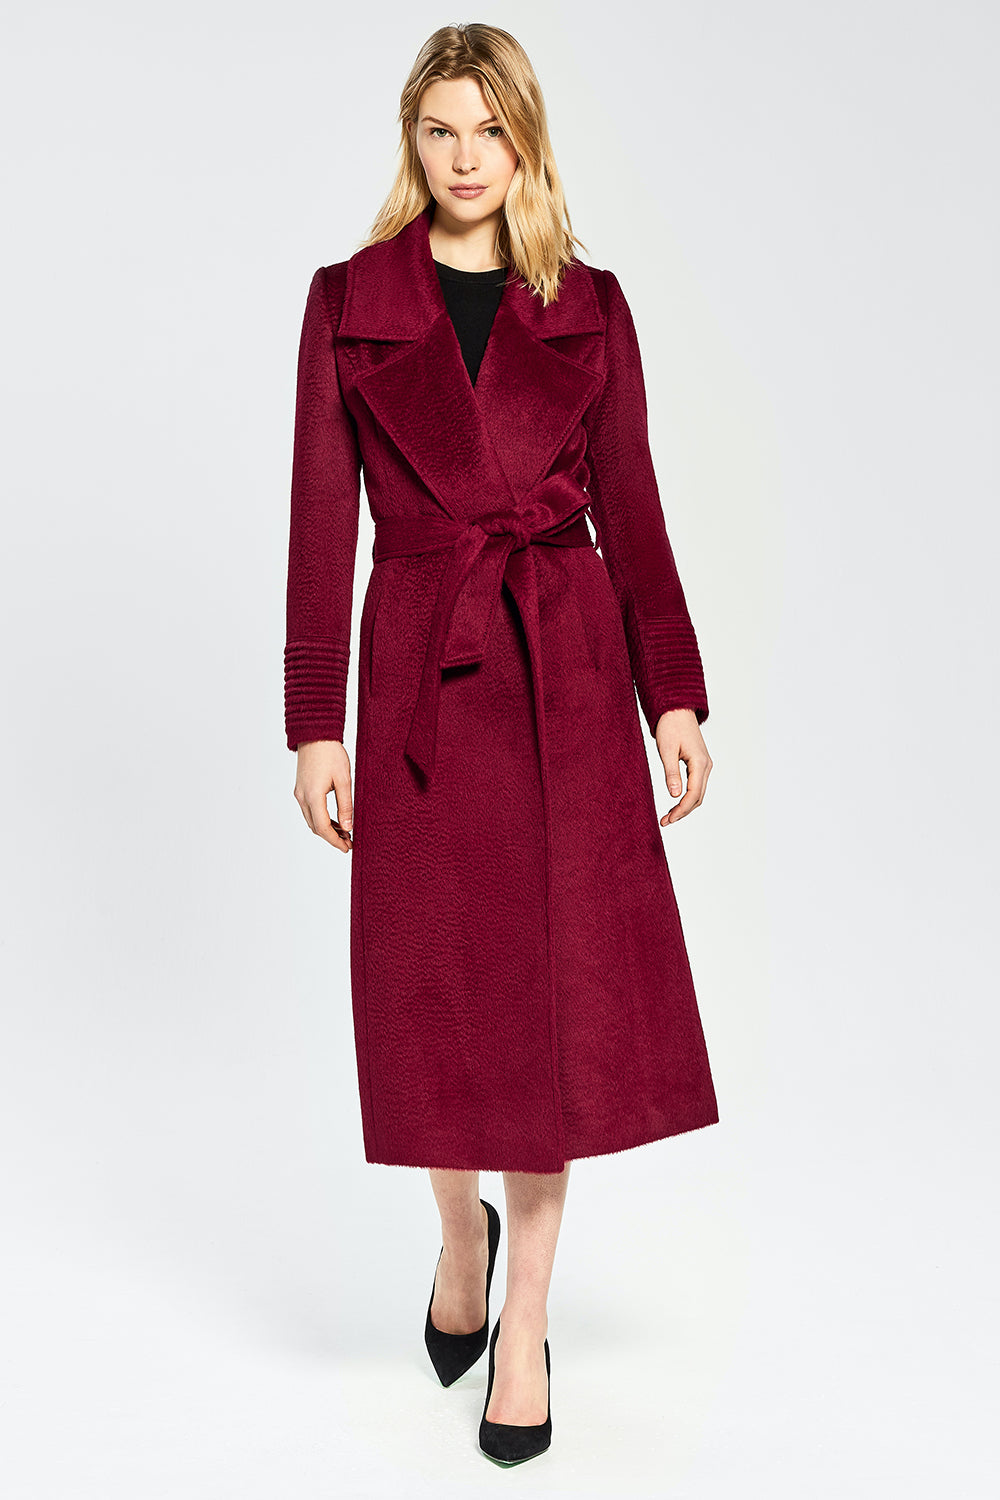 Sentaler Suri Alpaca Long Notched Collar Wrap Coat featured in Suri Alpaca and available in Bordeaux. Seen from front.